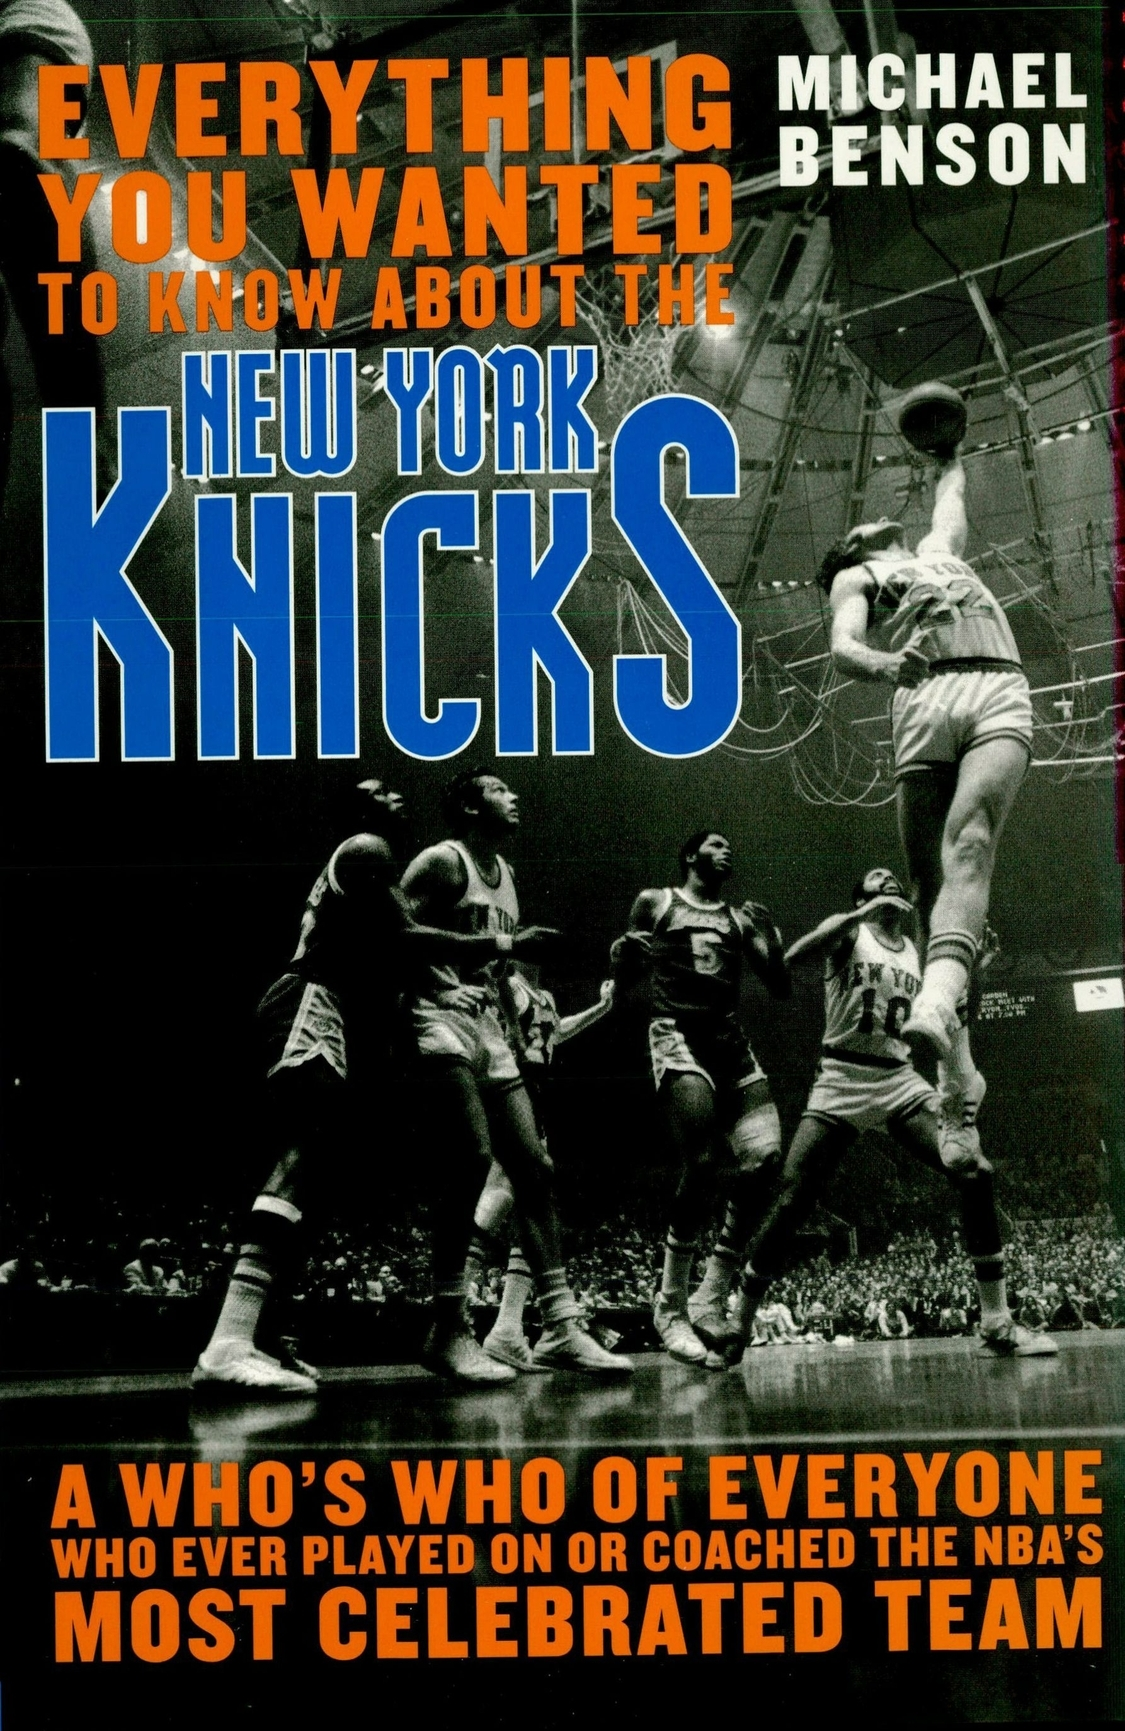 Everything You Wanted to Know About the New York Knicks